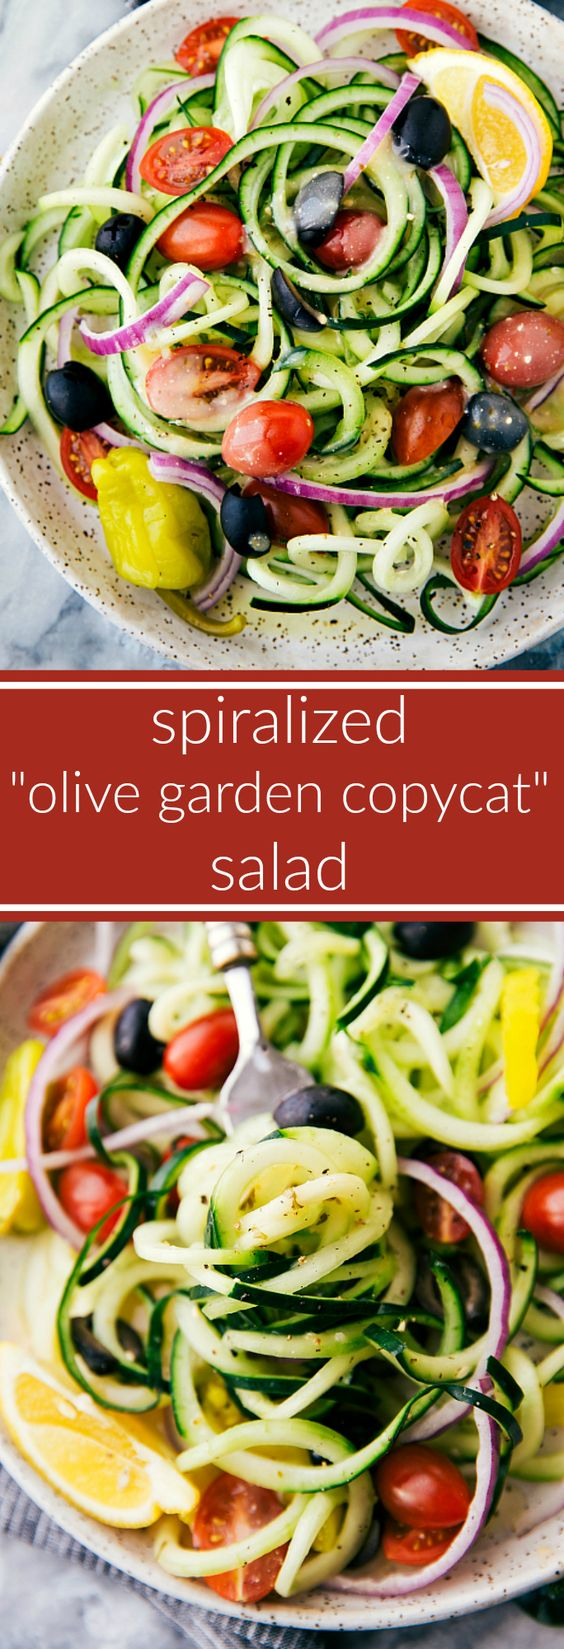 Spiralized Cucumber Salad With Olive Garden Dressing Copycat Recipe Cucumber Salad Olive